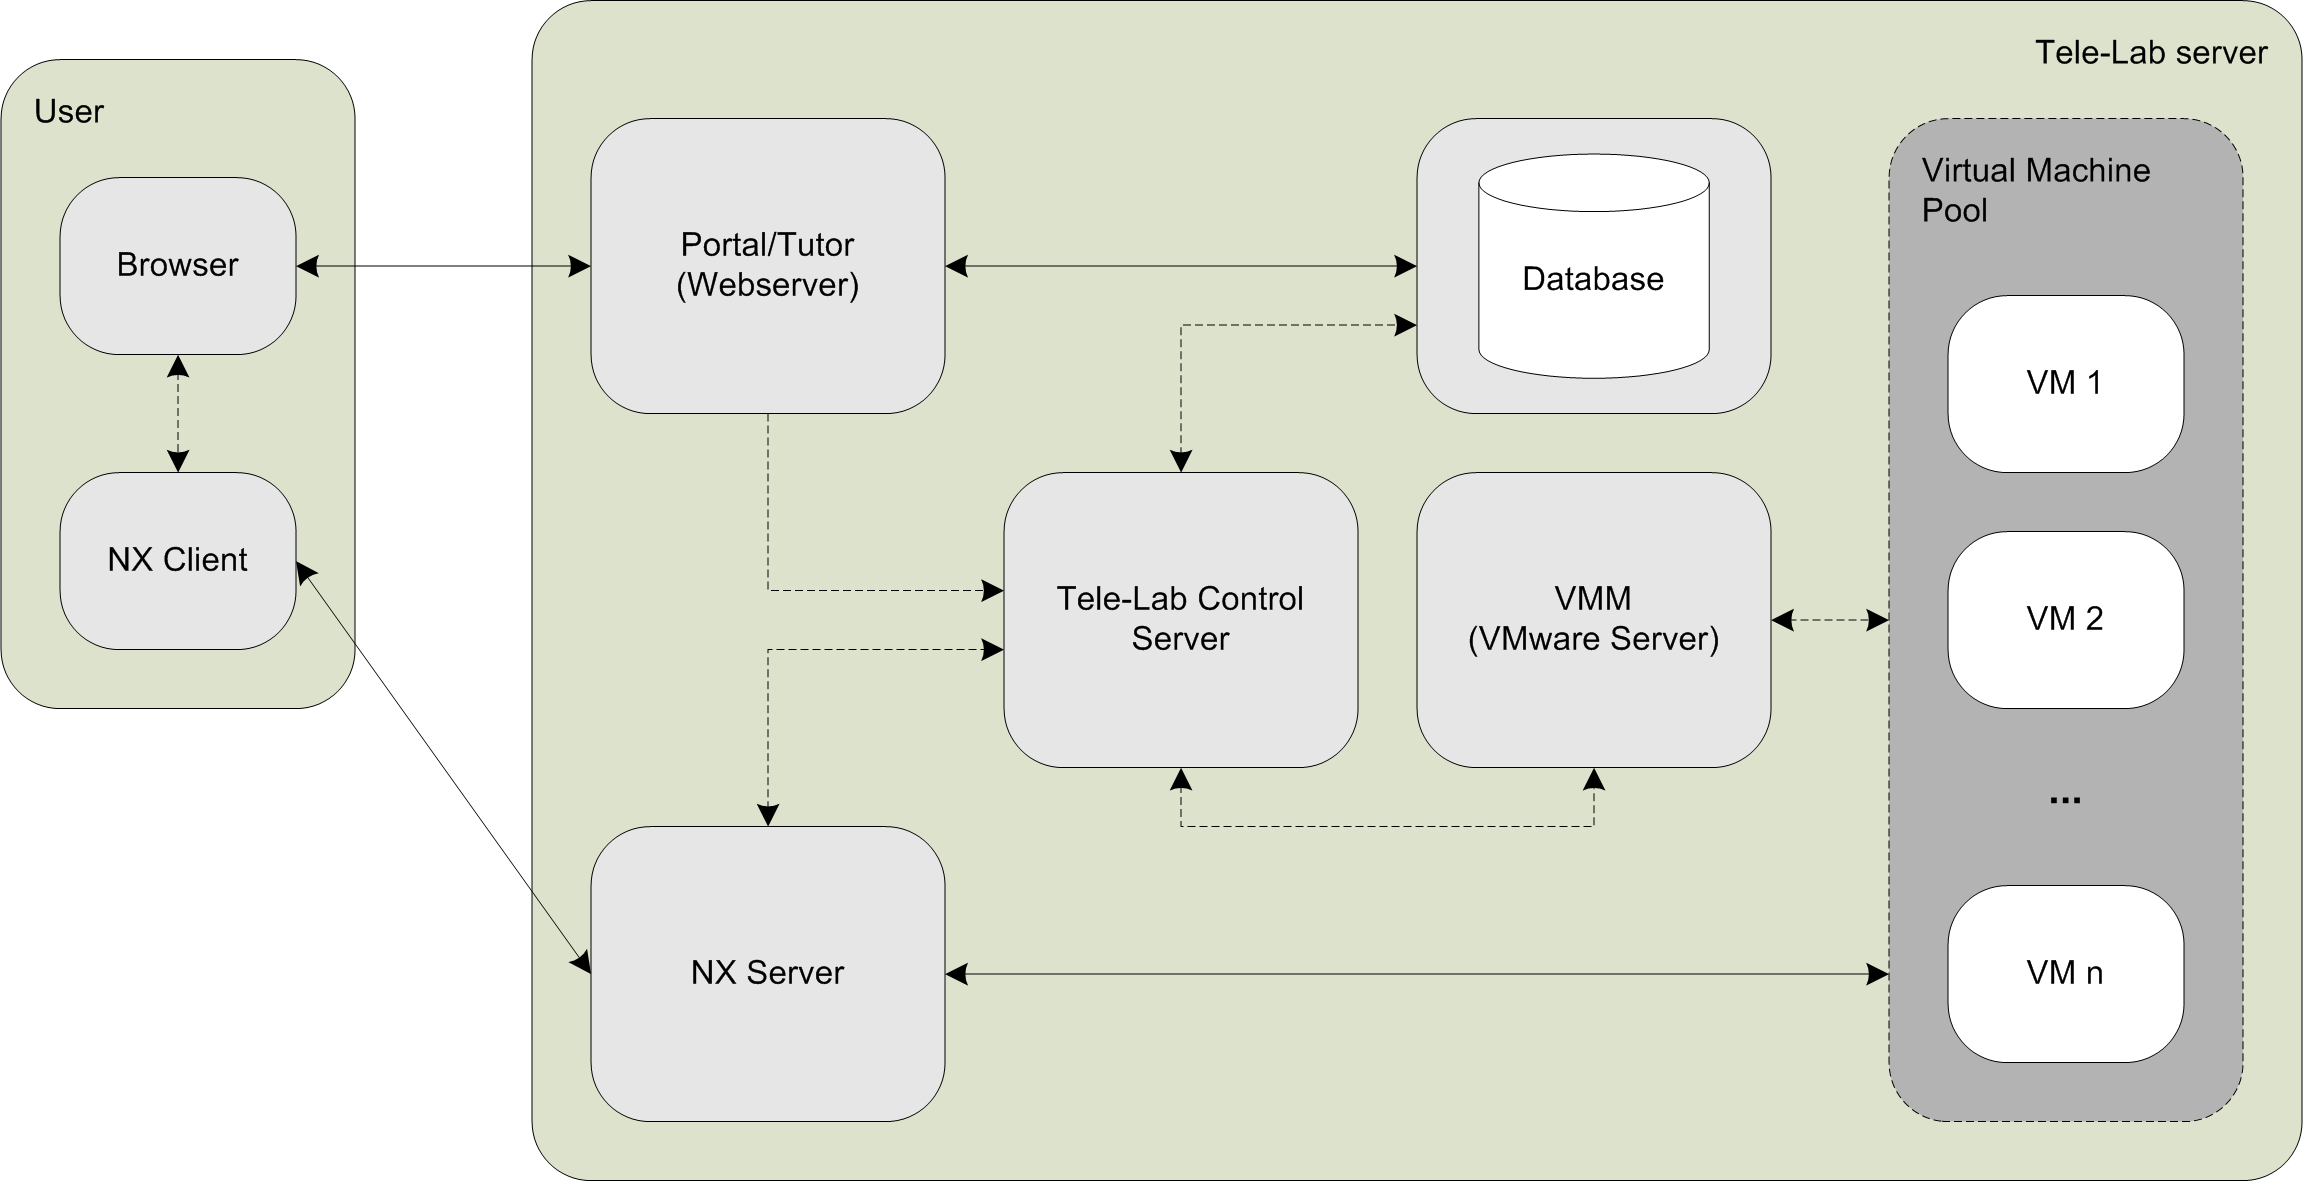 Figure 2. Overview: architecture of the Tele-Lab server Before describing the important components in detail, the paper will motivate the objectives of the design process for this architecture.